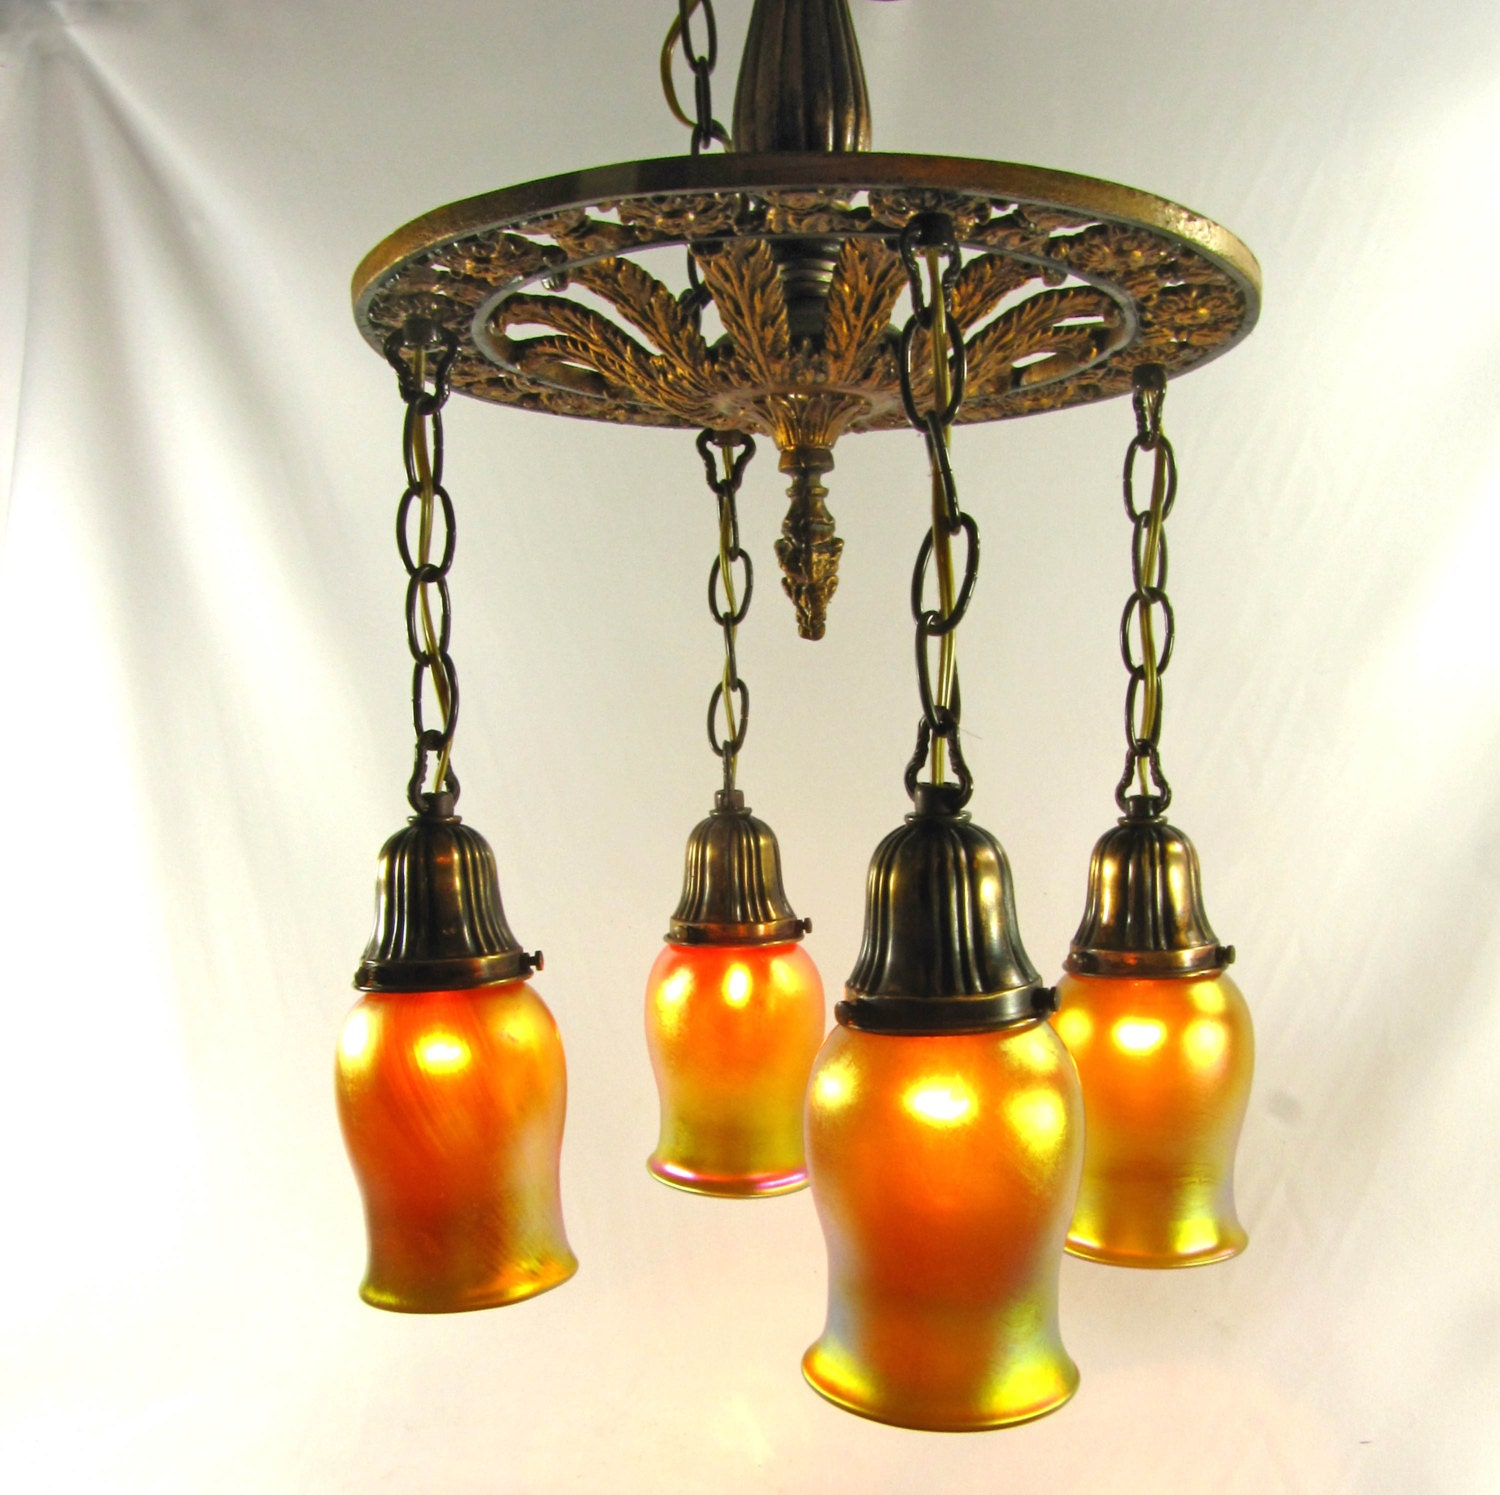 Chandelier Vintage Deco Light Hanging Antique Fixture Cast